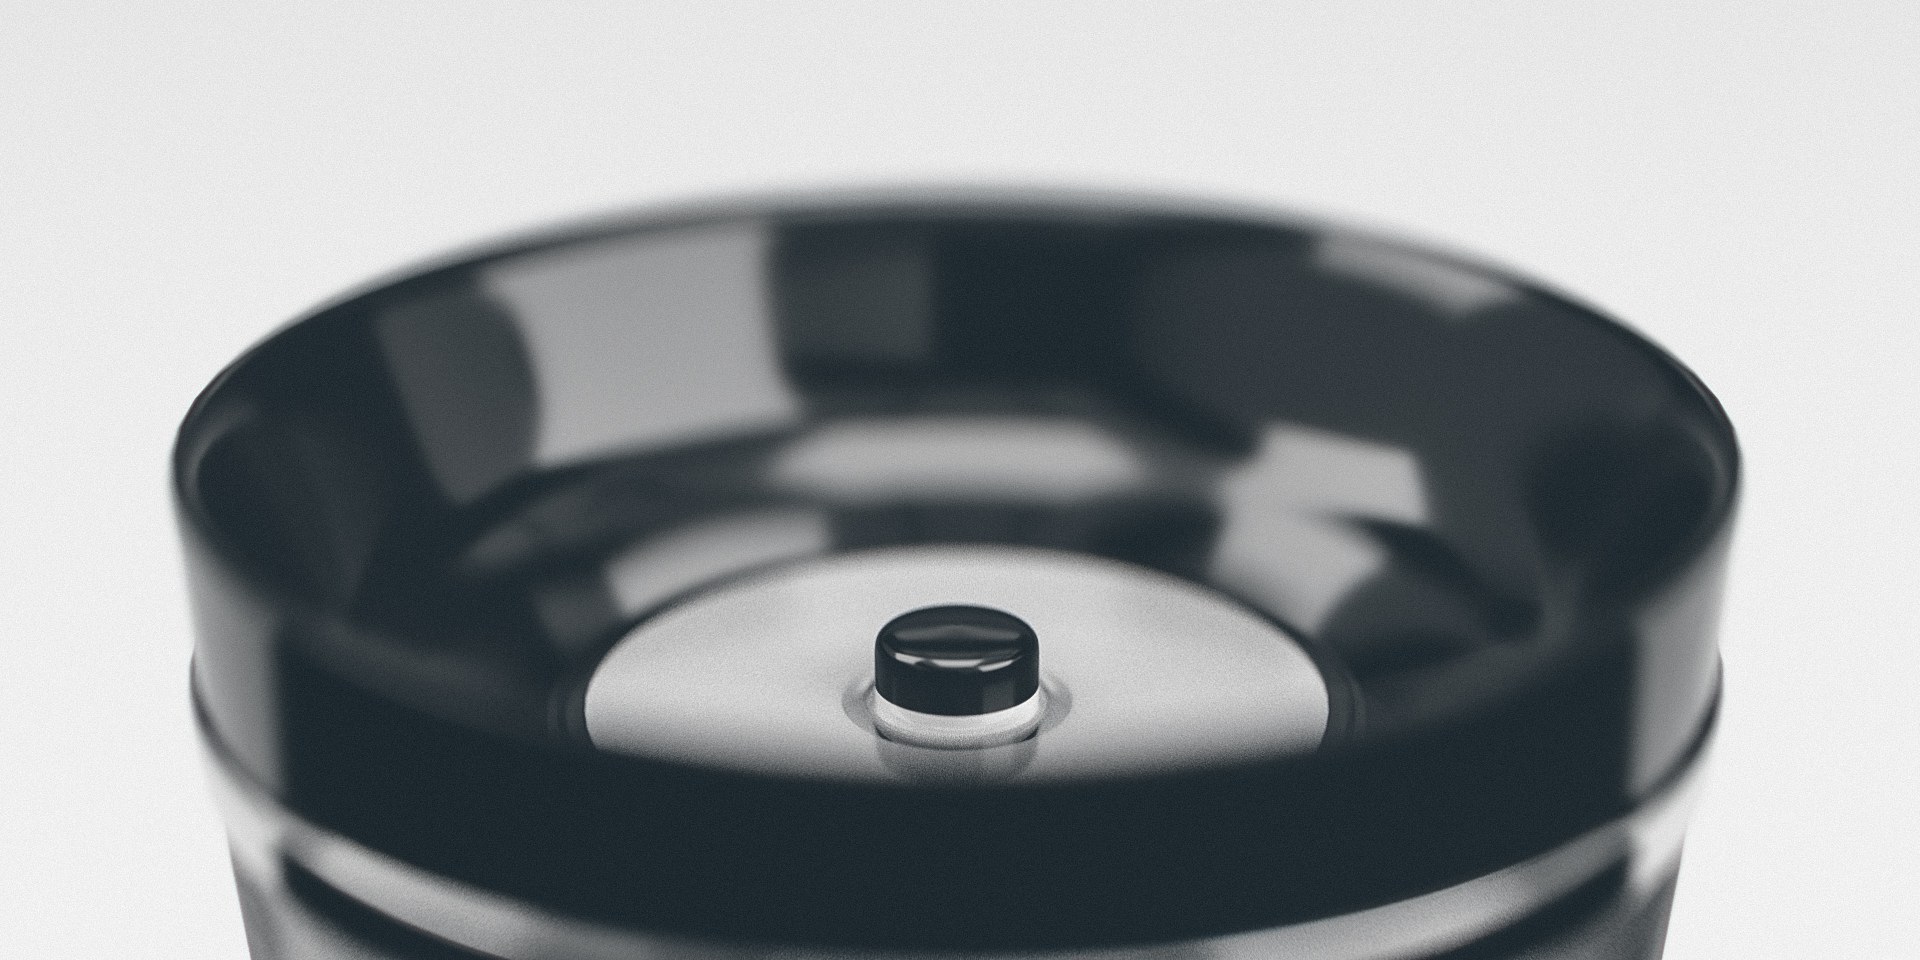 Thermos Discovery Button Close-up Render